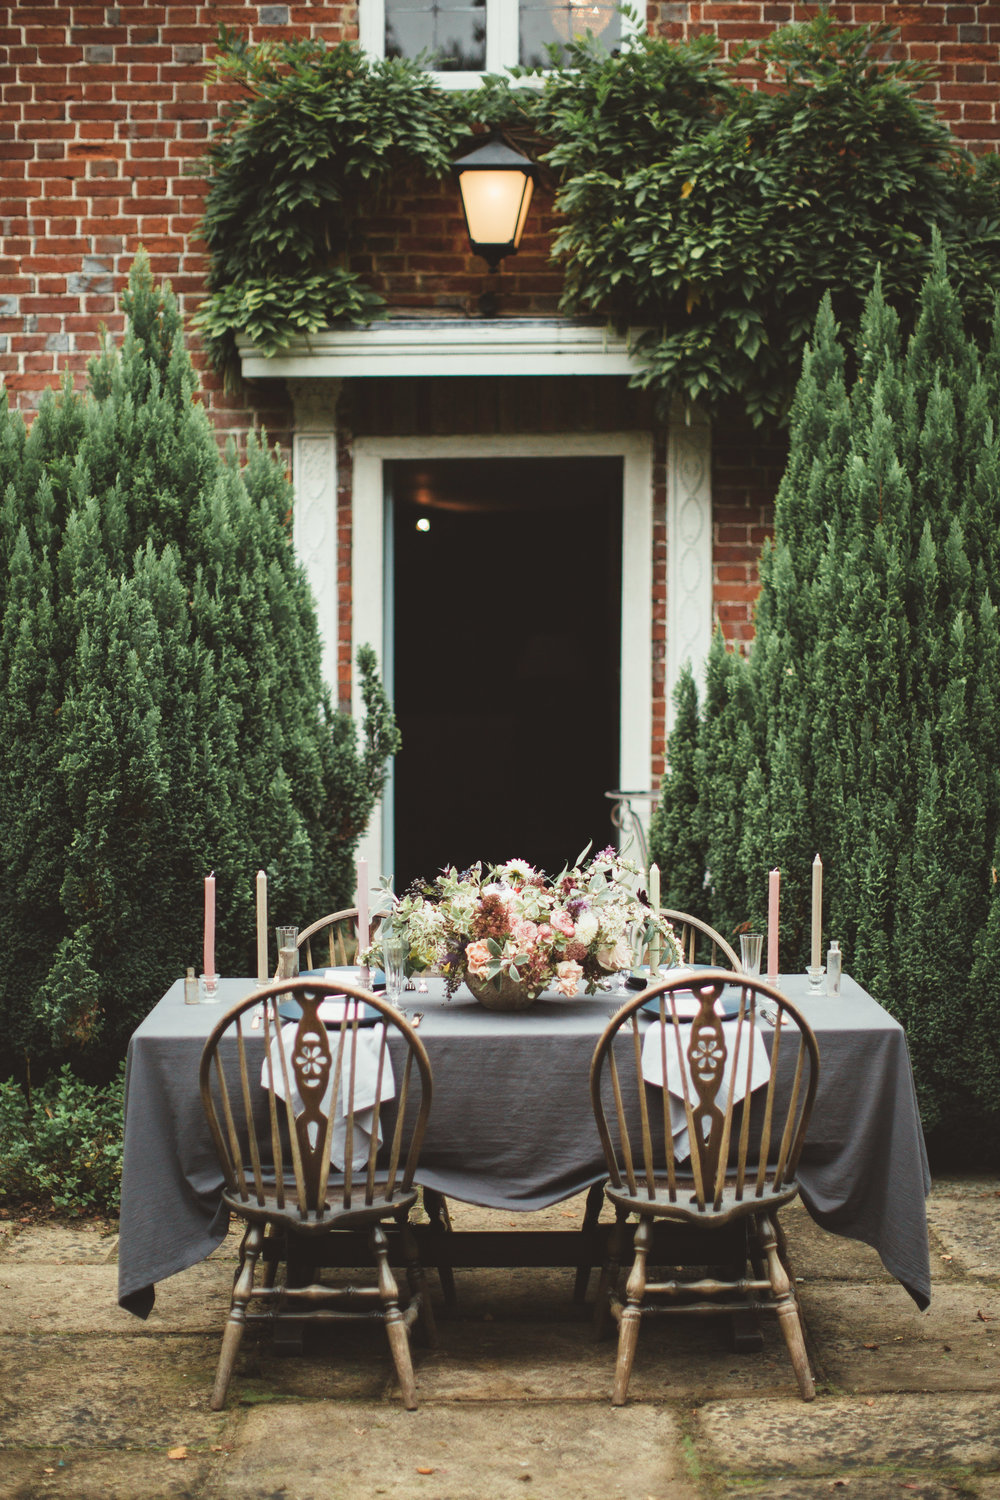 Vintage Amy Wedding Styling-Modern Rustic Luxe Vintage Wedding Tablescape-Outdoor Wedding Kent